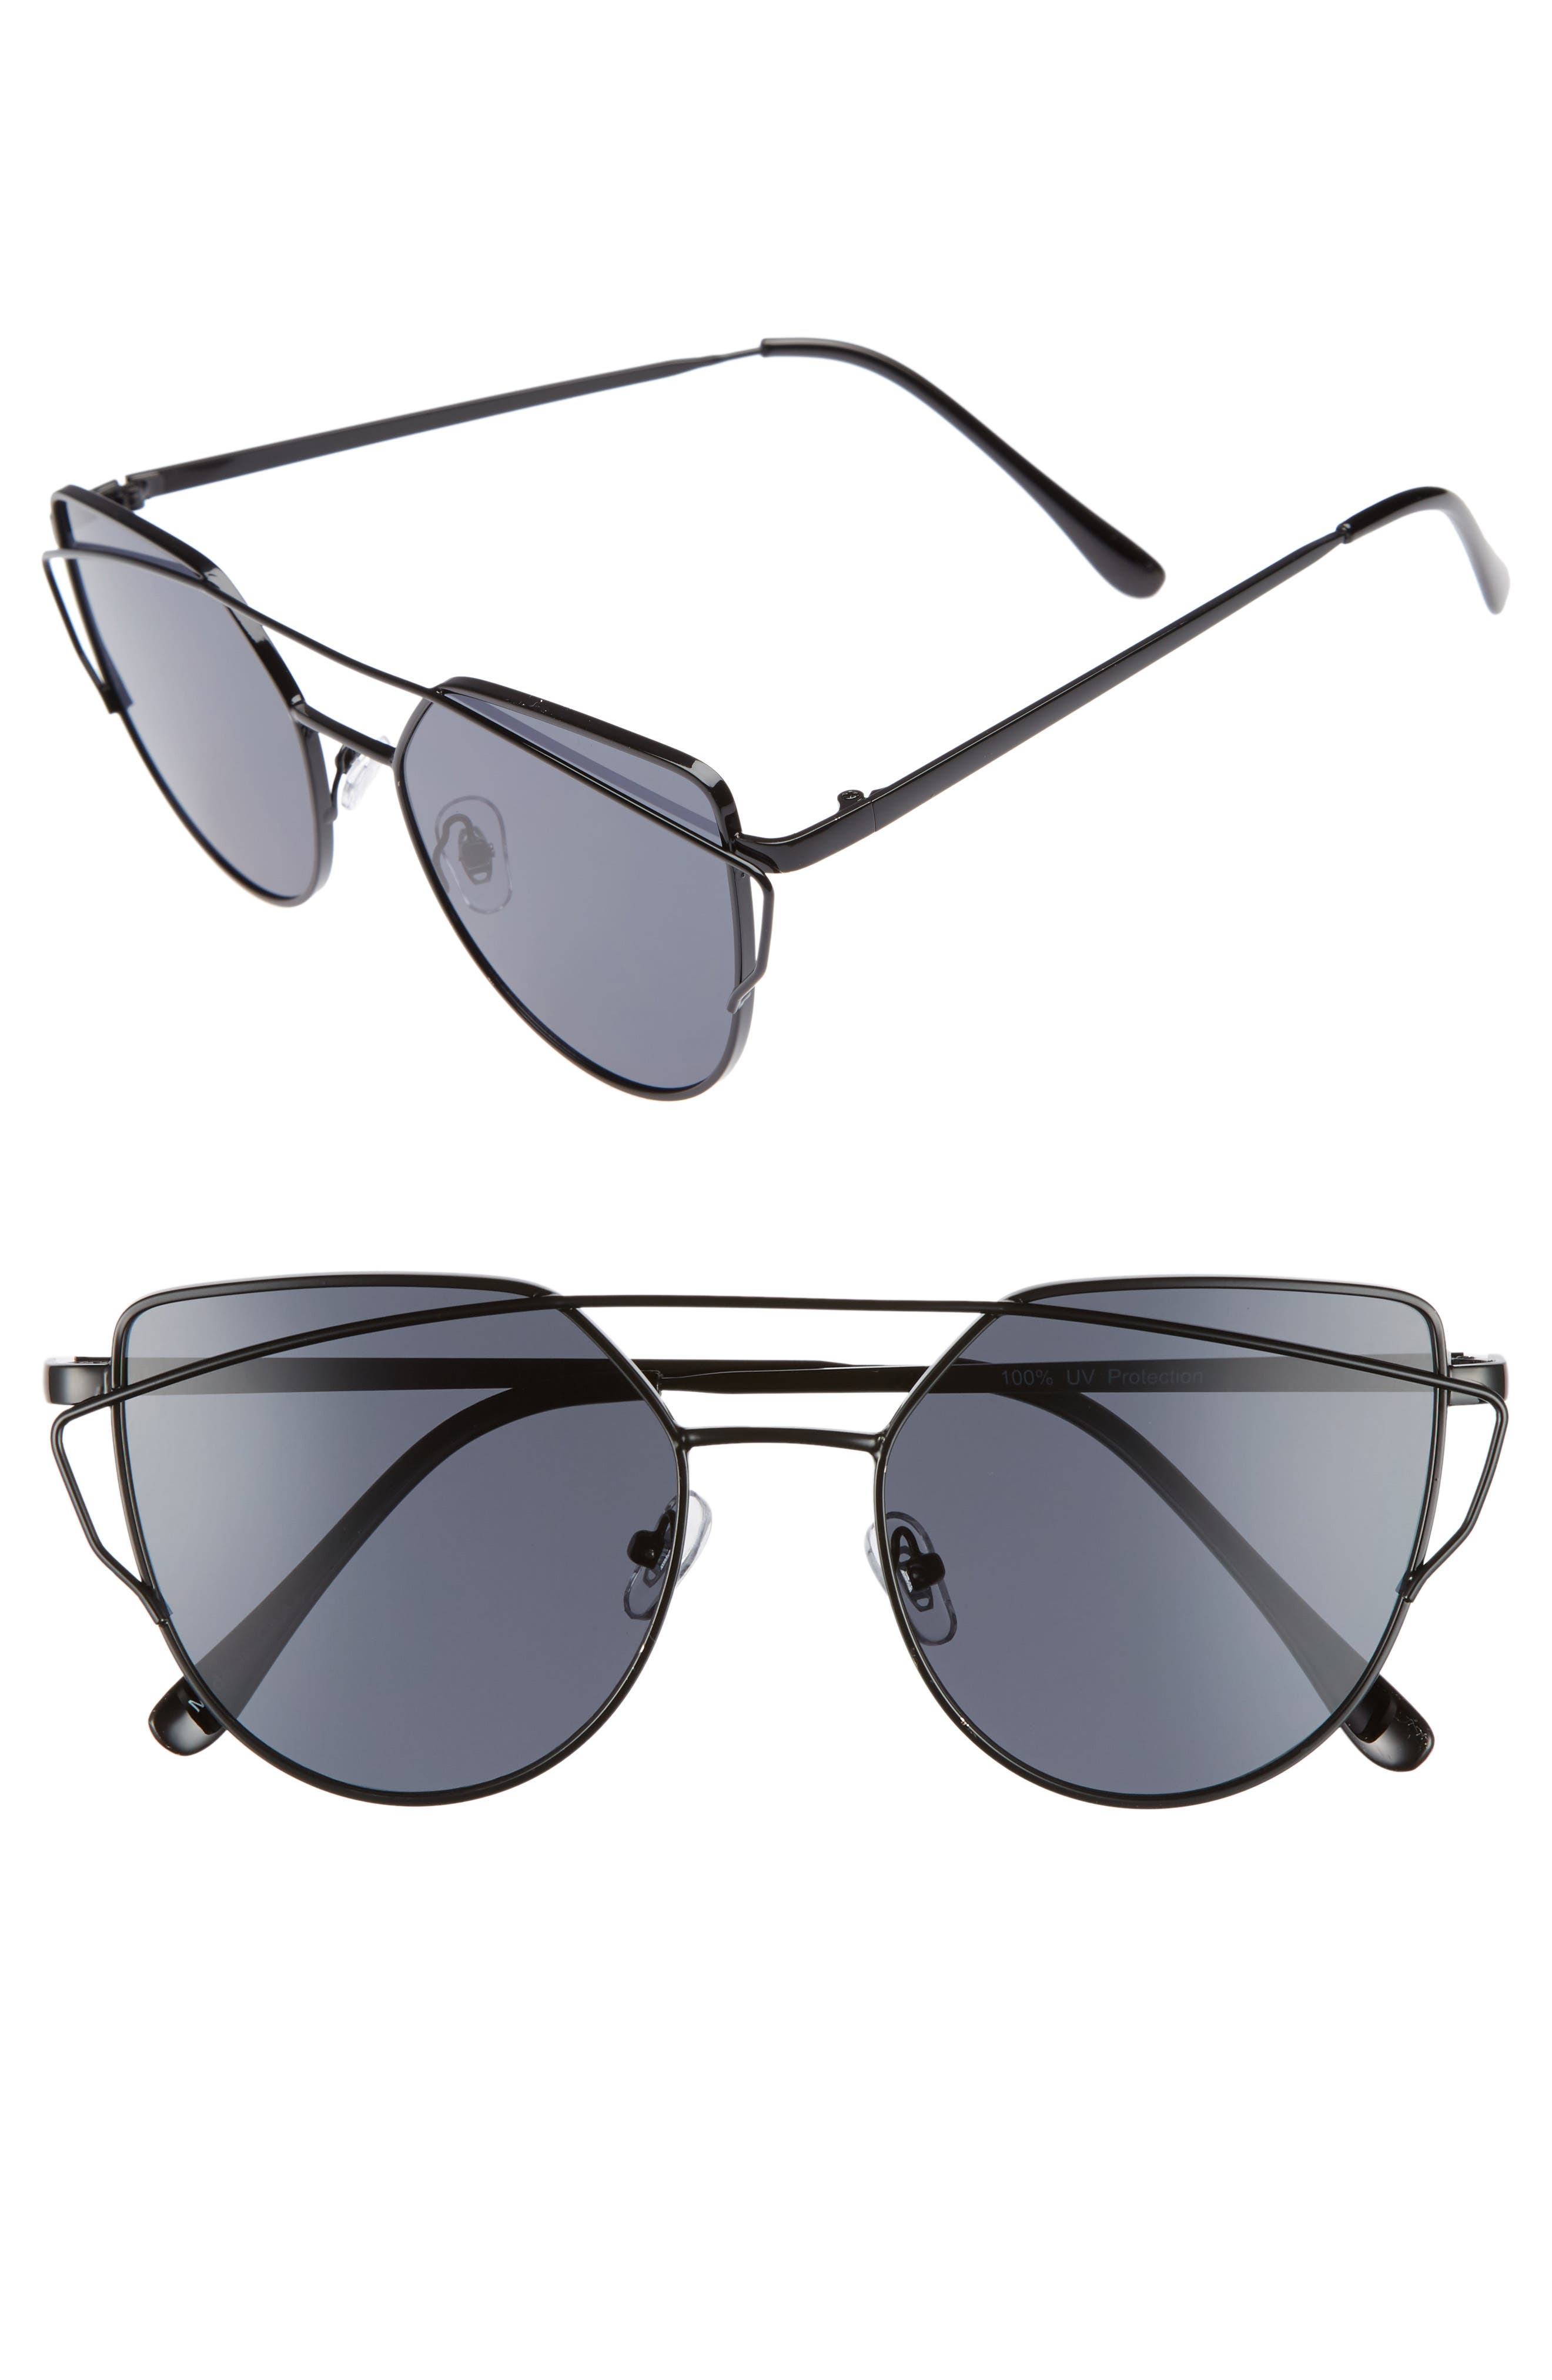 51mm Thin Brow Angular Aviator Sunglasses,                             Main thumbnail 3, color,